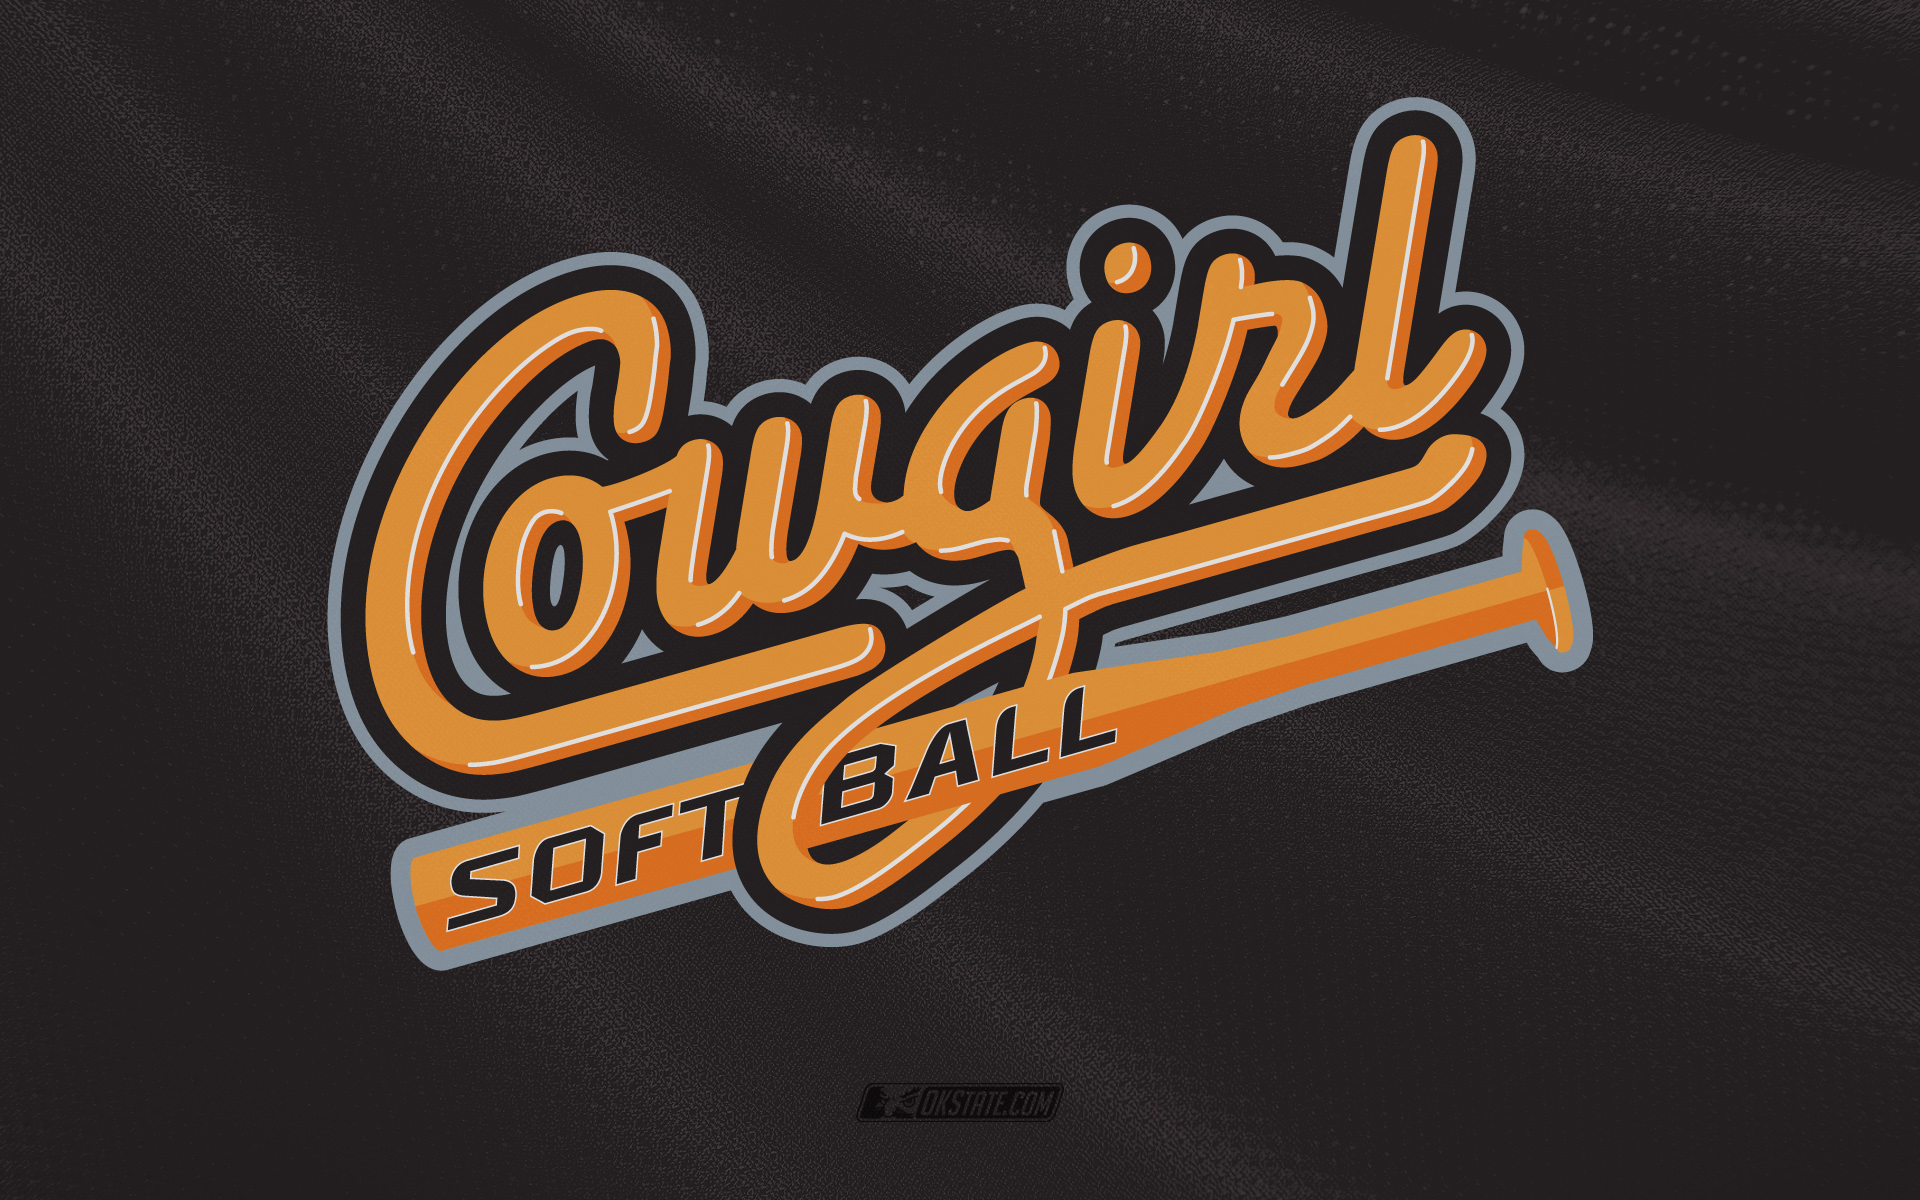 Pics photos related pictures softball wallpaper softball desktop - Cute Softball Wallpapers Desktop Jpg 70 Cowgirl Softball